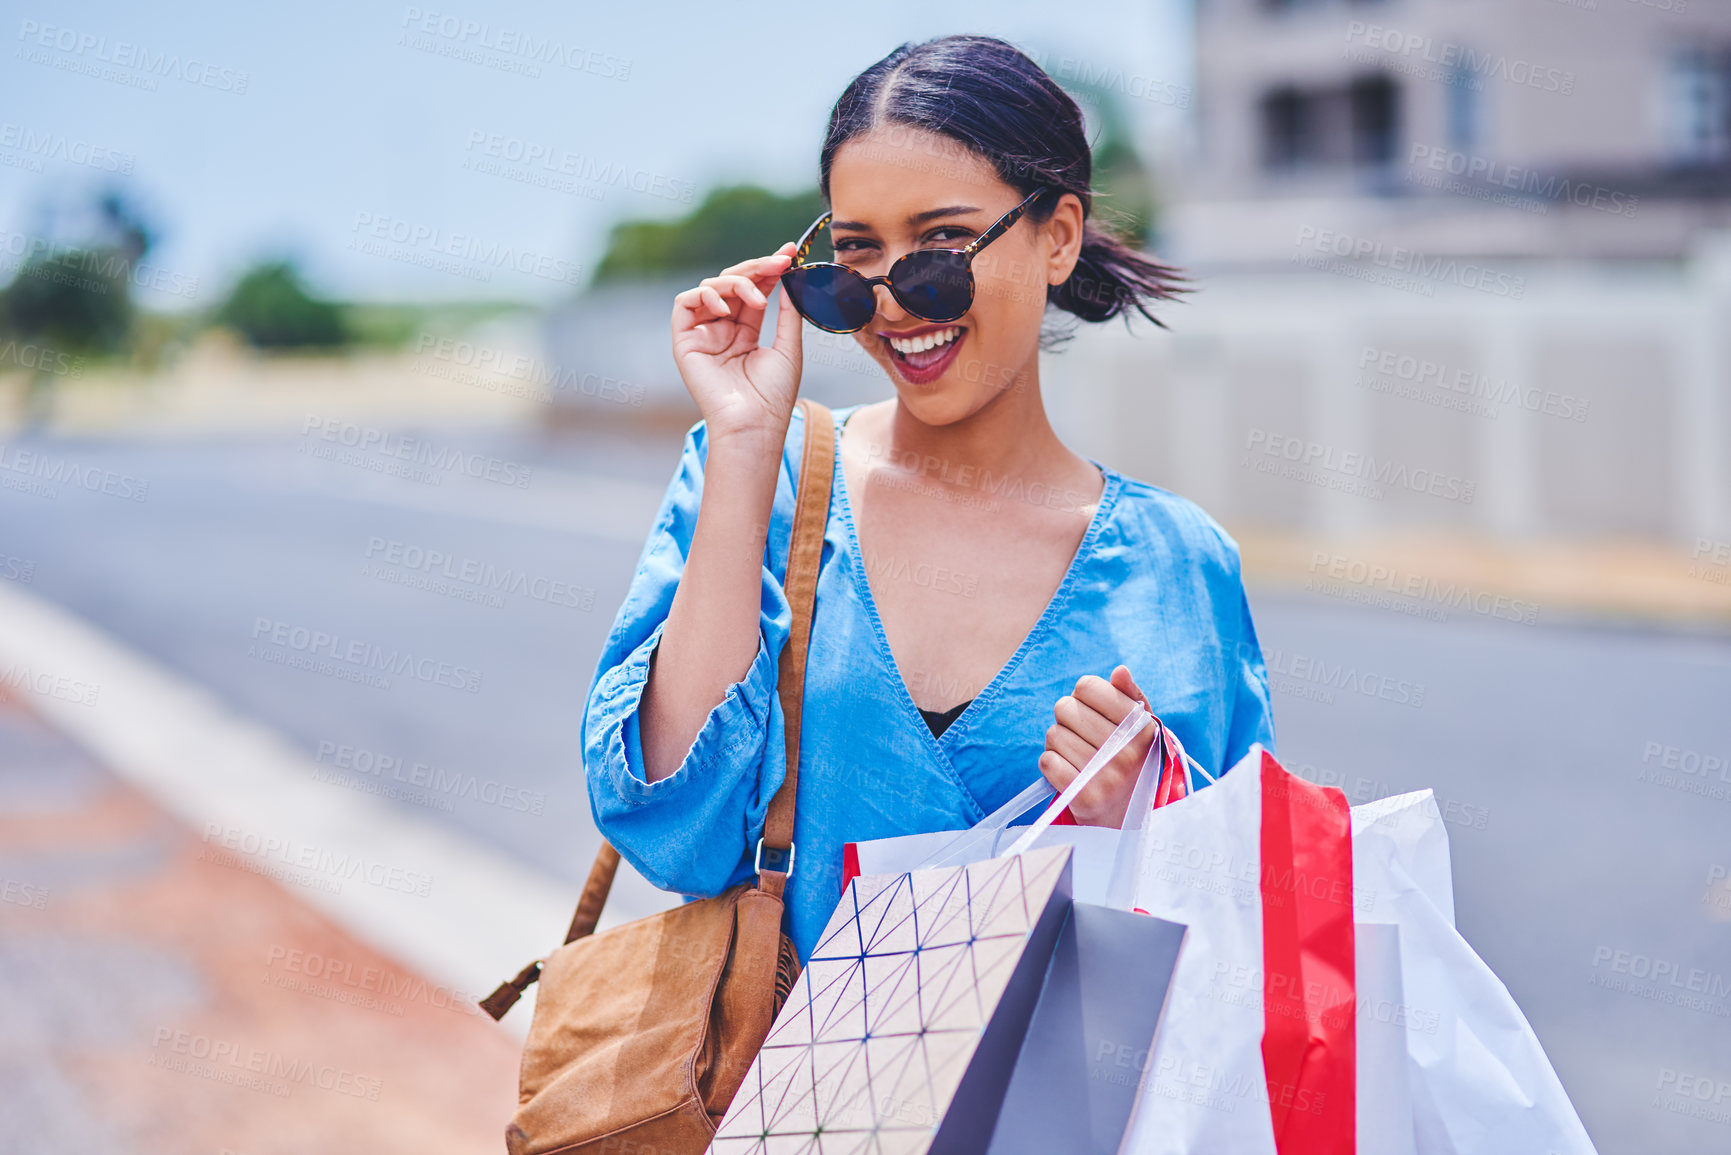 Buy stock photo Cropped portrait of an attractive young woman smiling while holding shopping bags in the city during the day